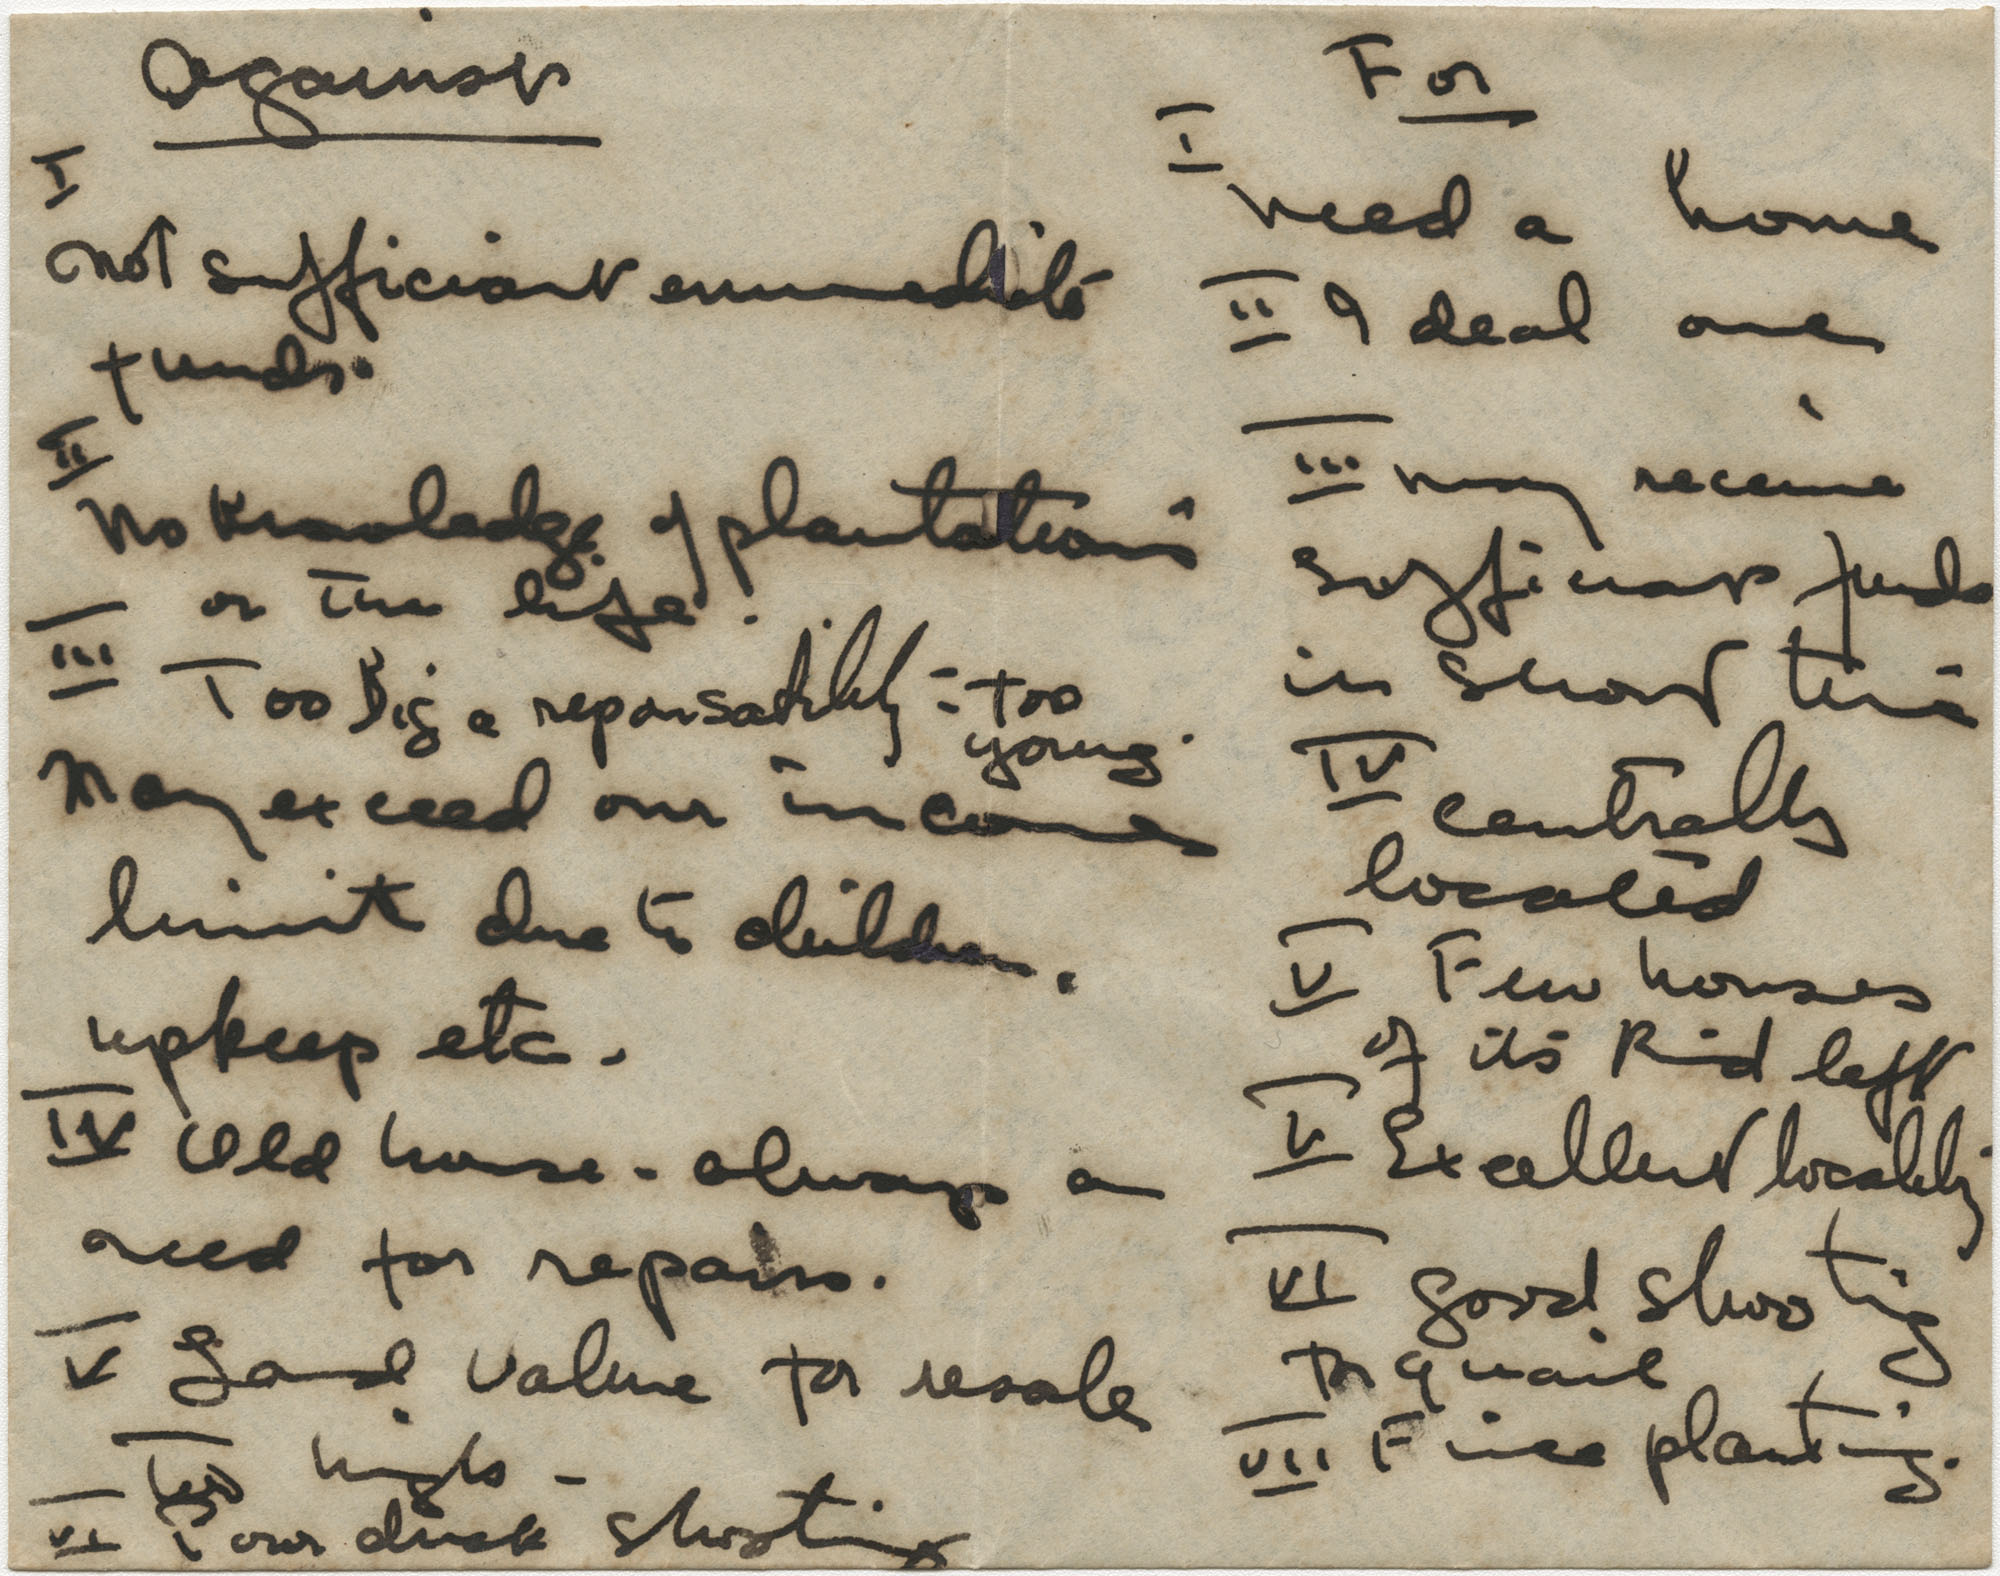 Gertrude Legendre's pro/con list for the purchase of Medway Plantation